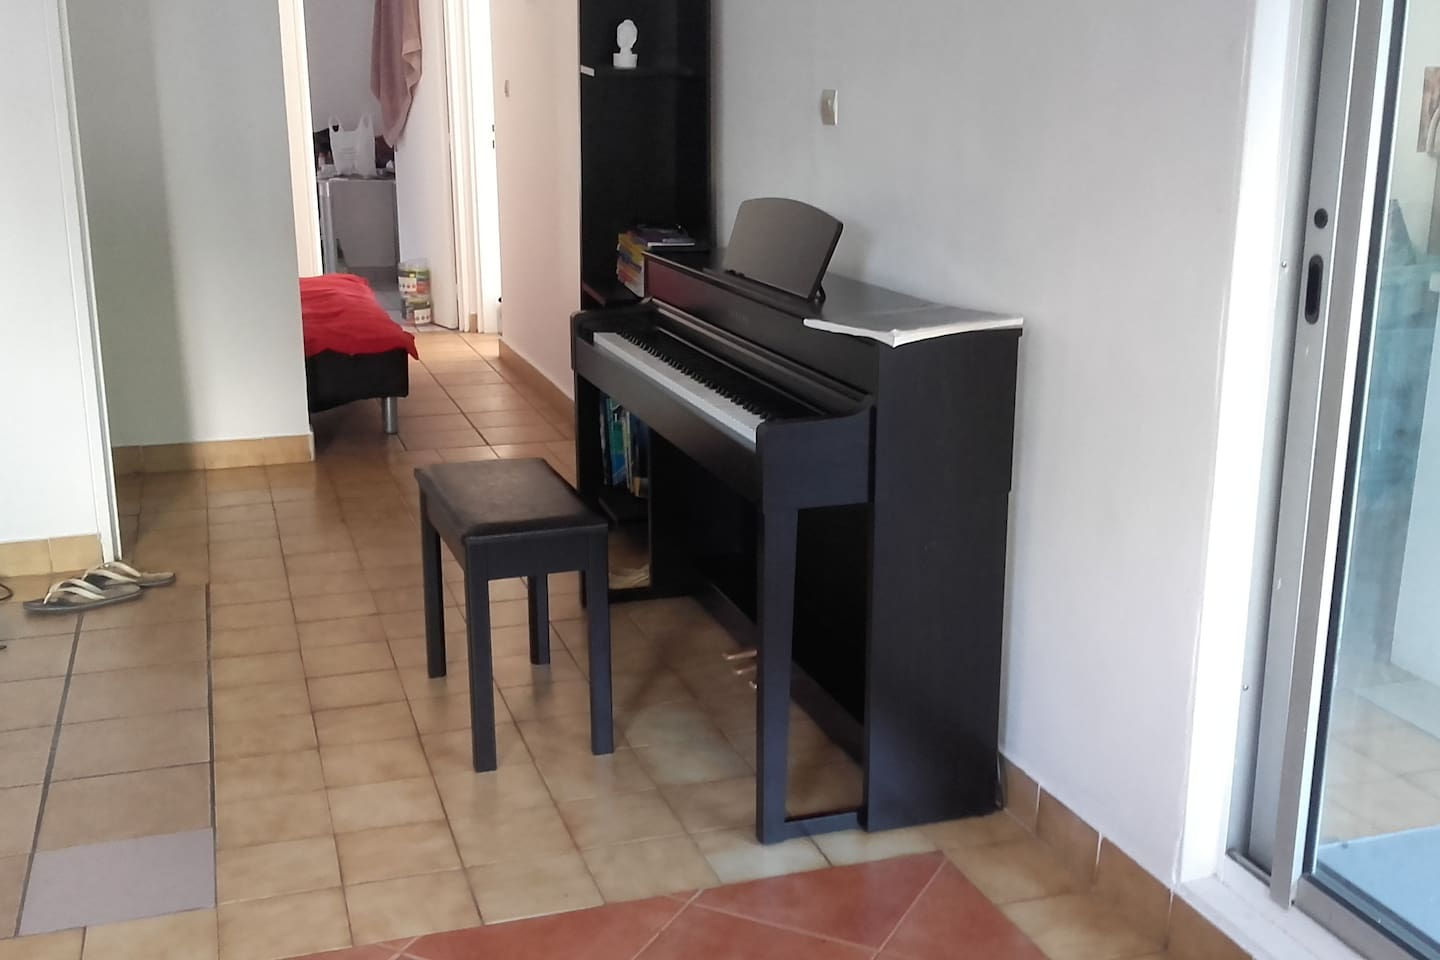 I'll add more recent picture if needed and a picture of the room. Note that it's an student appartment so it's not the GREAT room of your dreams, just a student room with some basics stuffs. Despite of this I have this piano and if you know how to play or if you want me to teach you i'd be pleased.